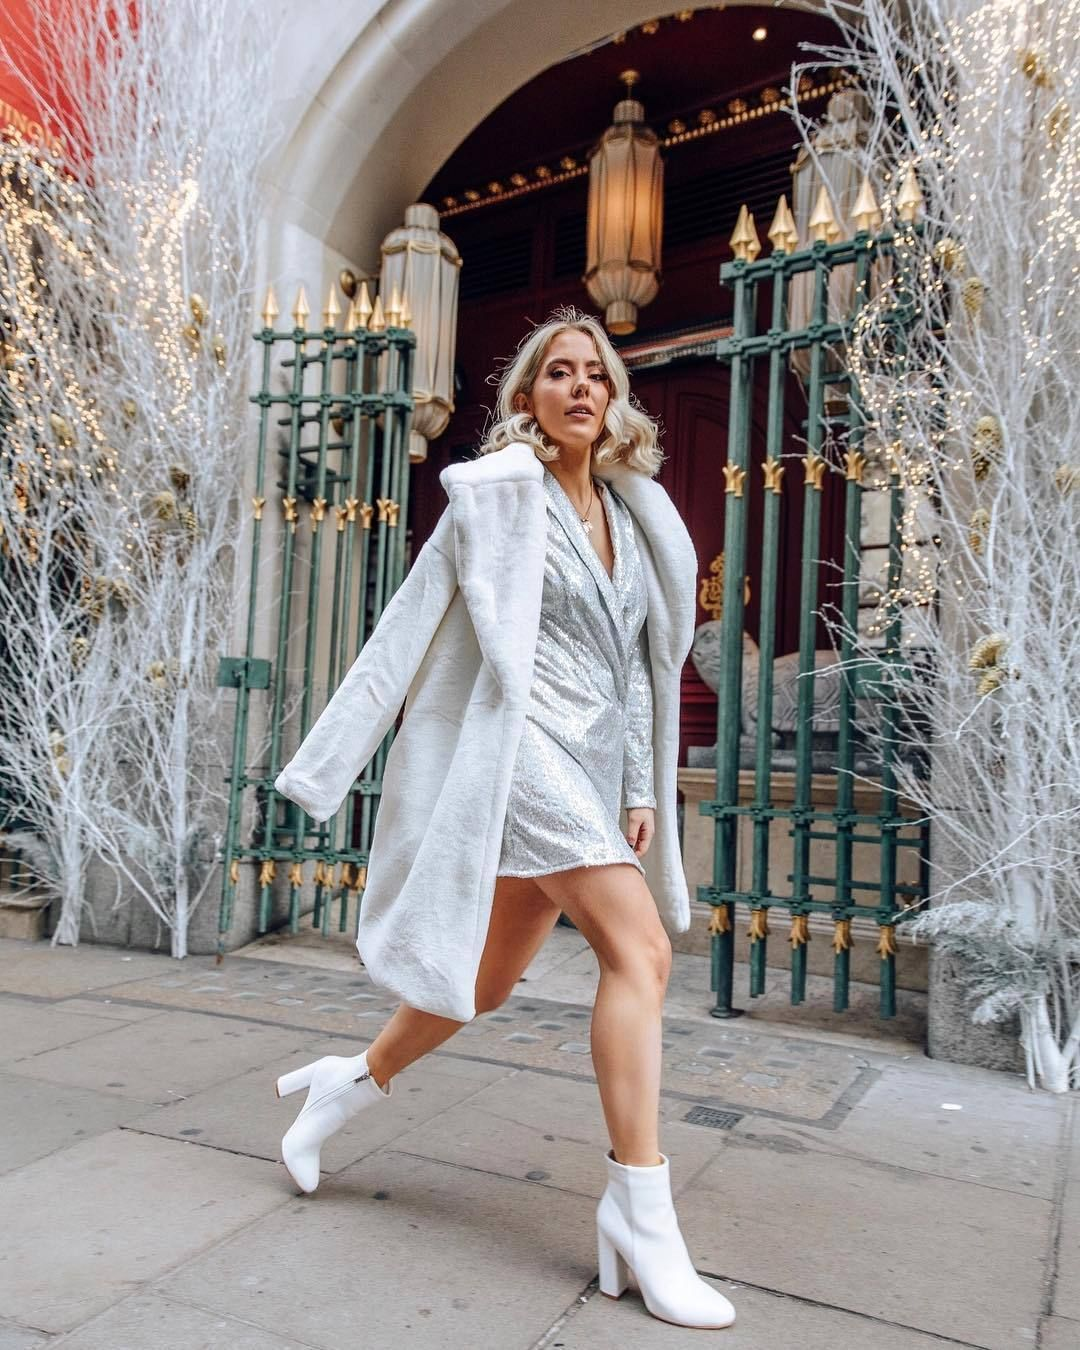 Find Out Where To Get The Dress Dresses Silver Blazer Dress With Boots [ 1350 x 1080 Pixel ]